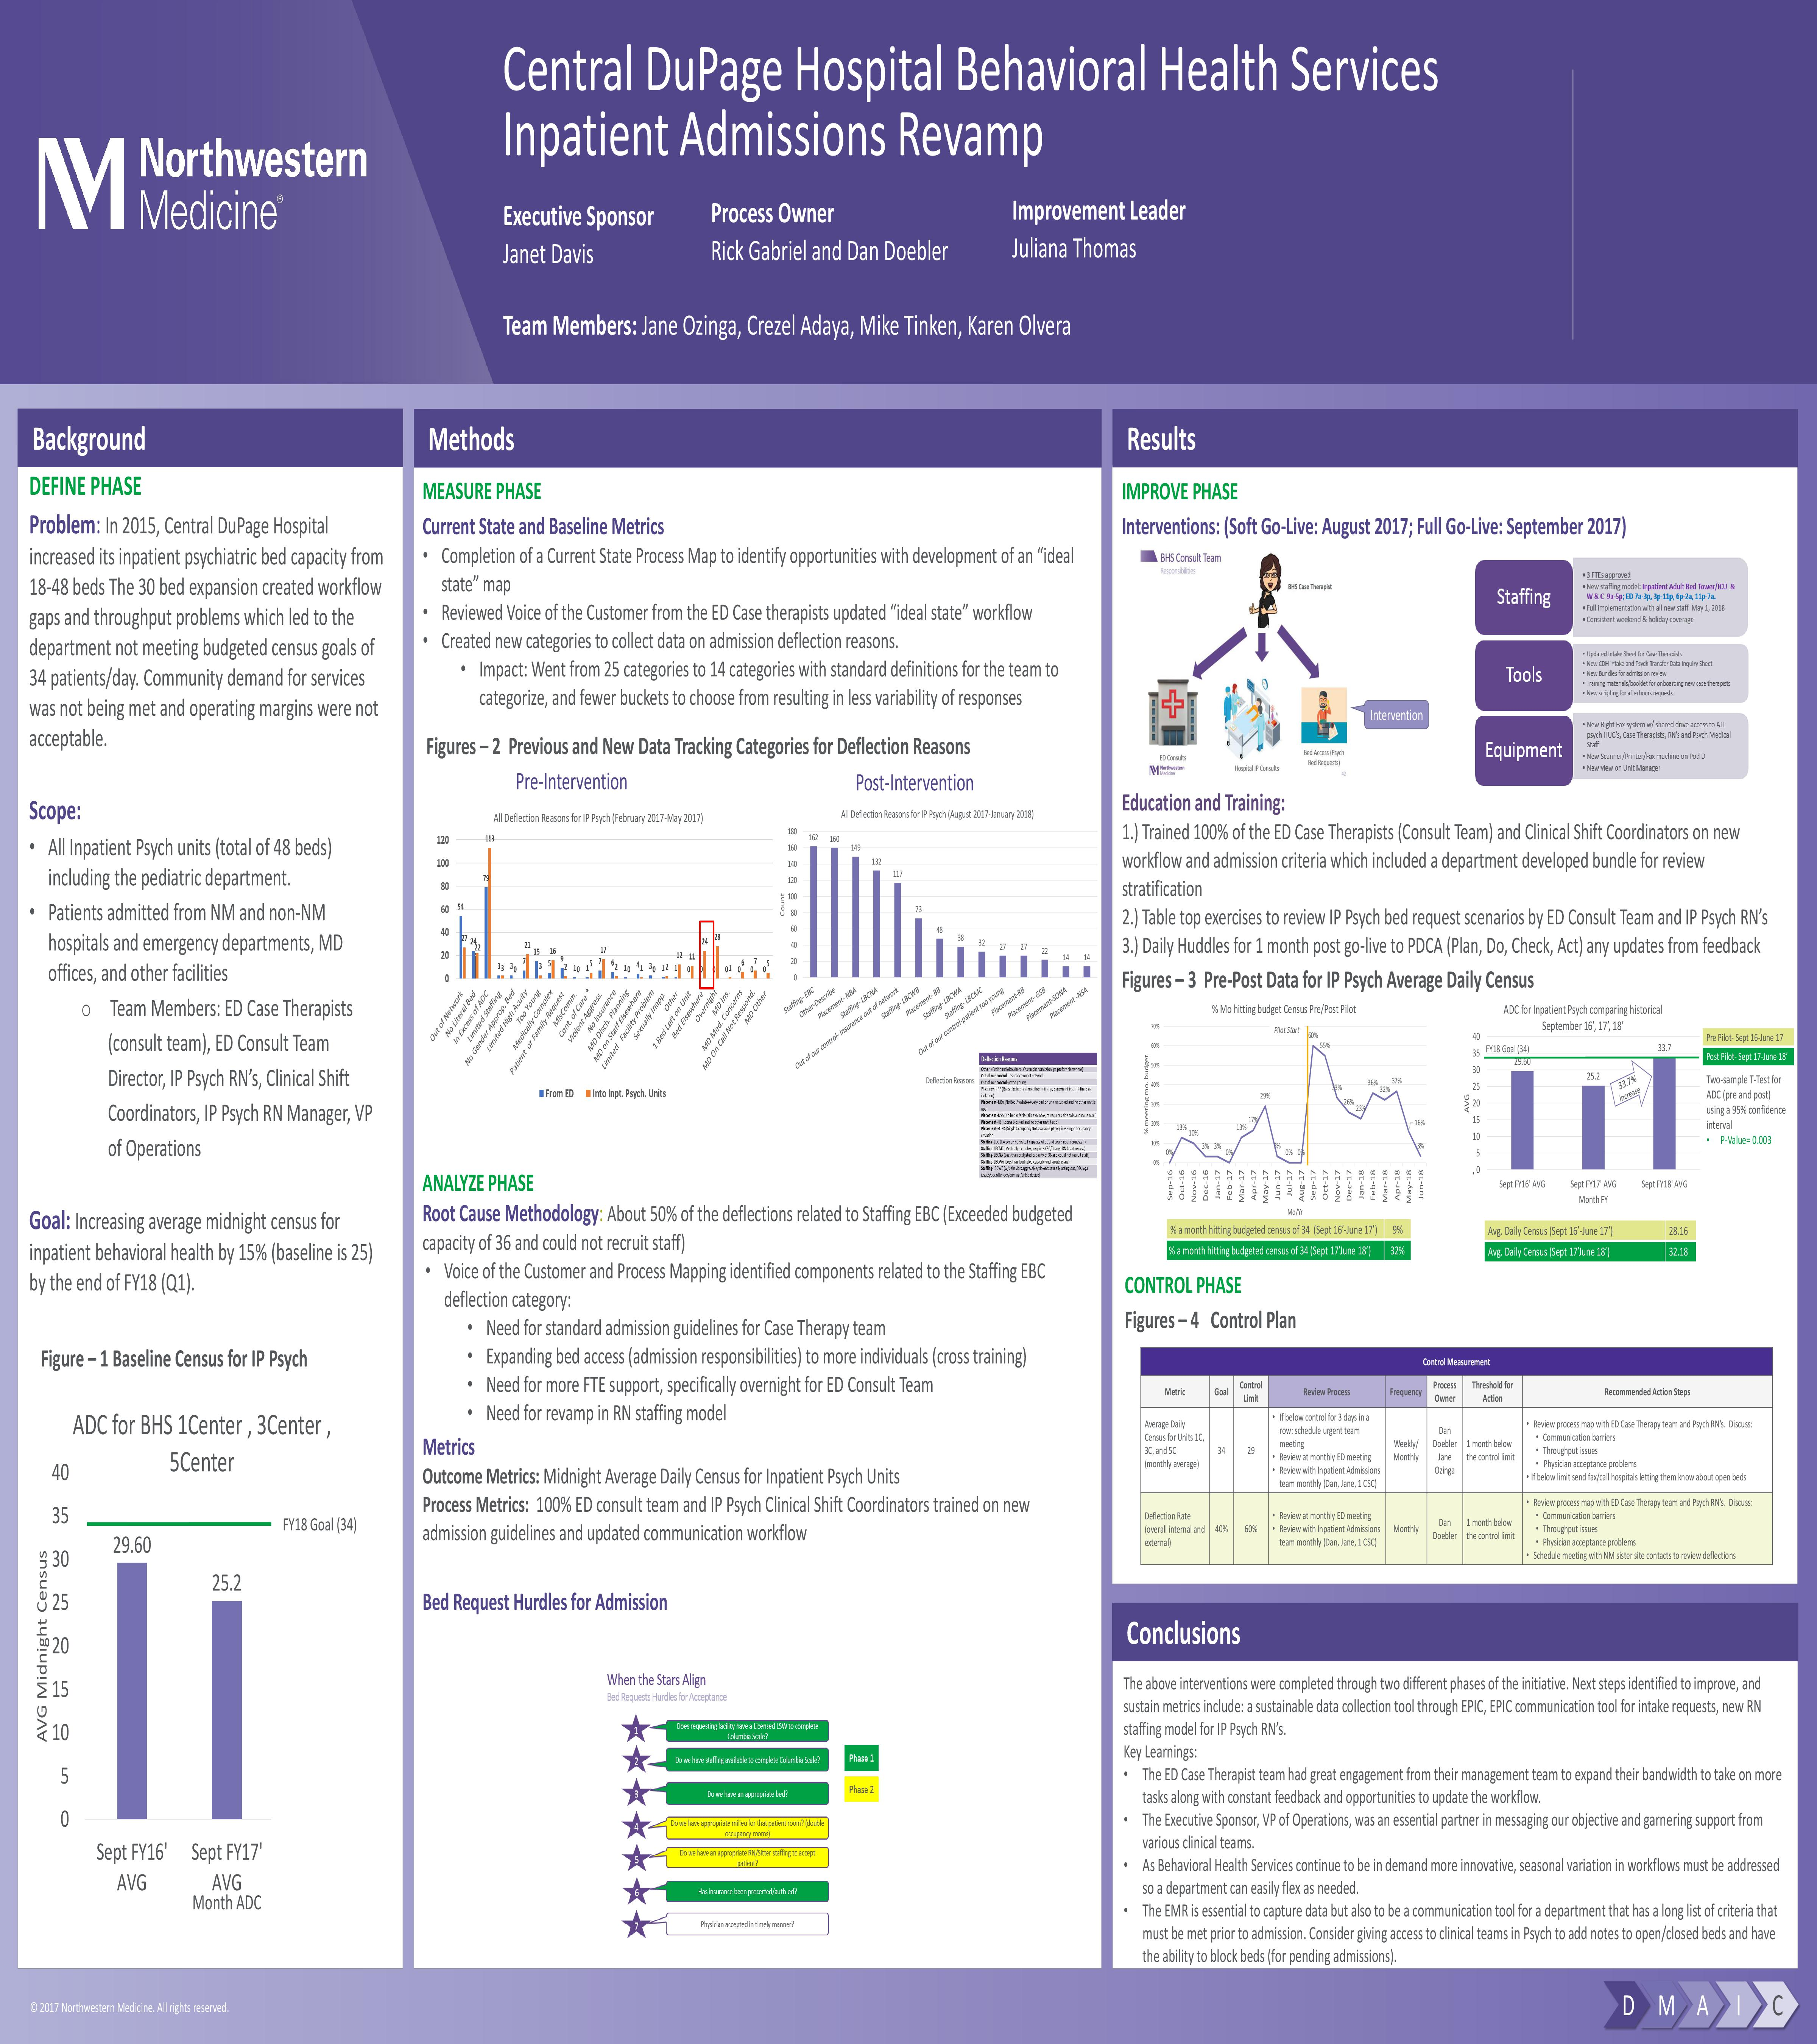 CDH IP Psych Bed Admissions Process Poster